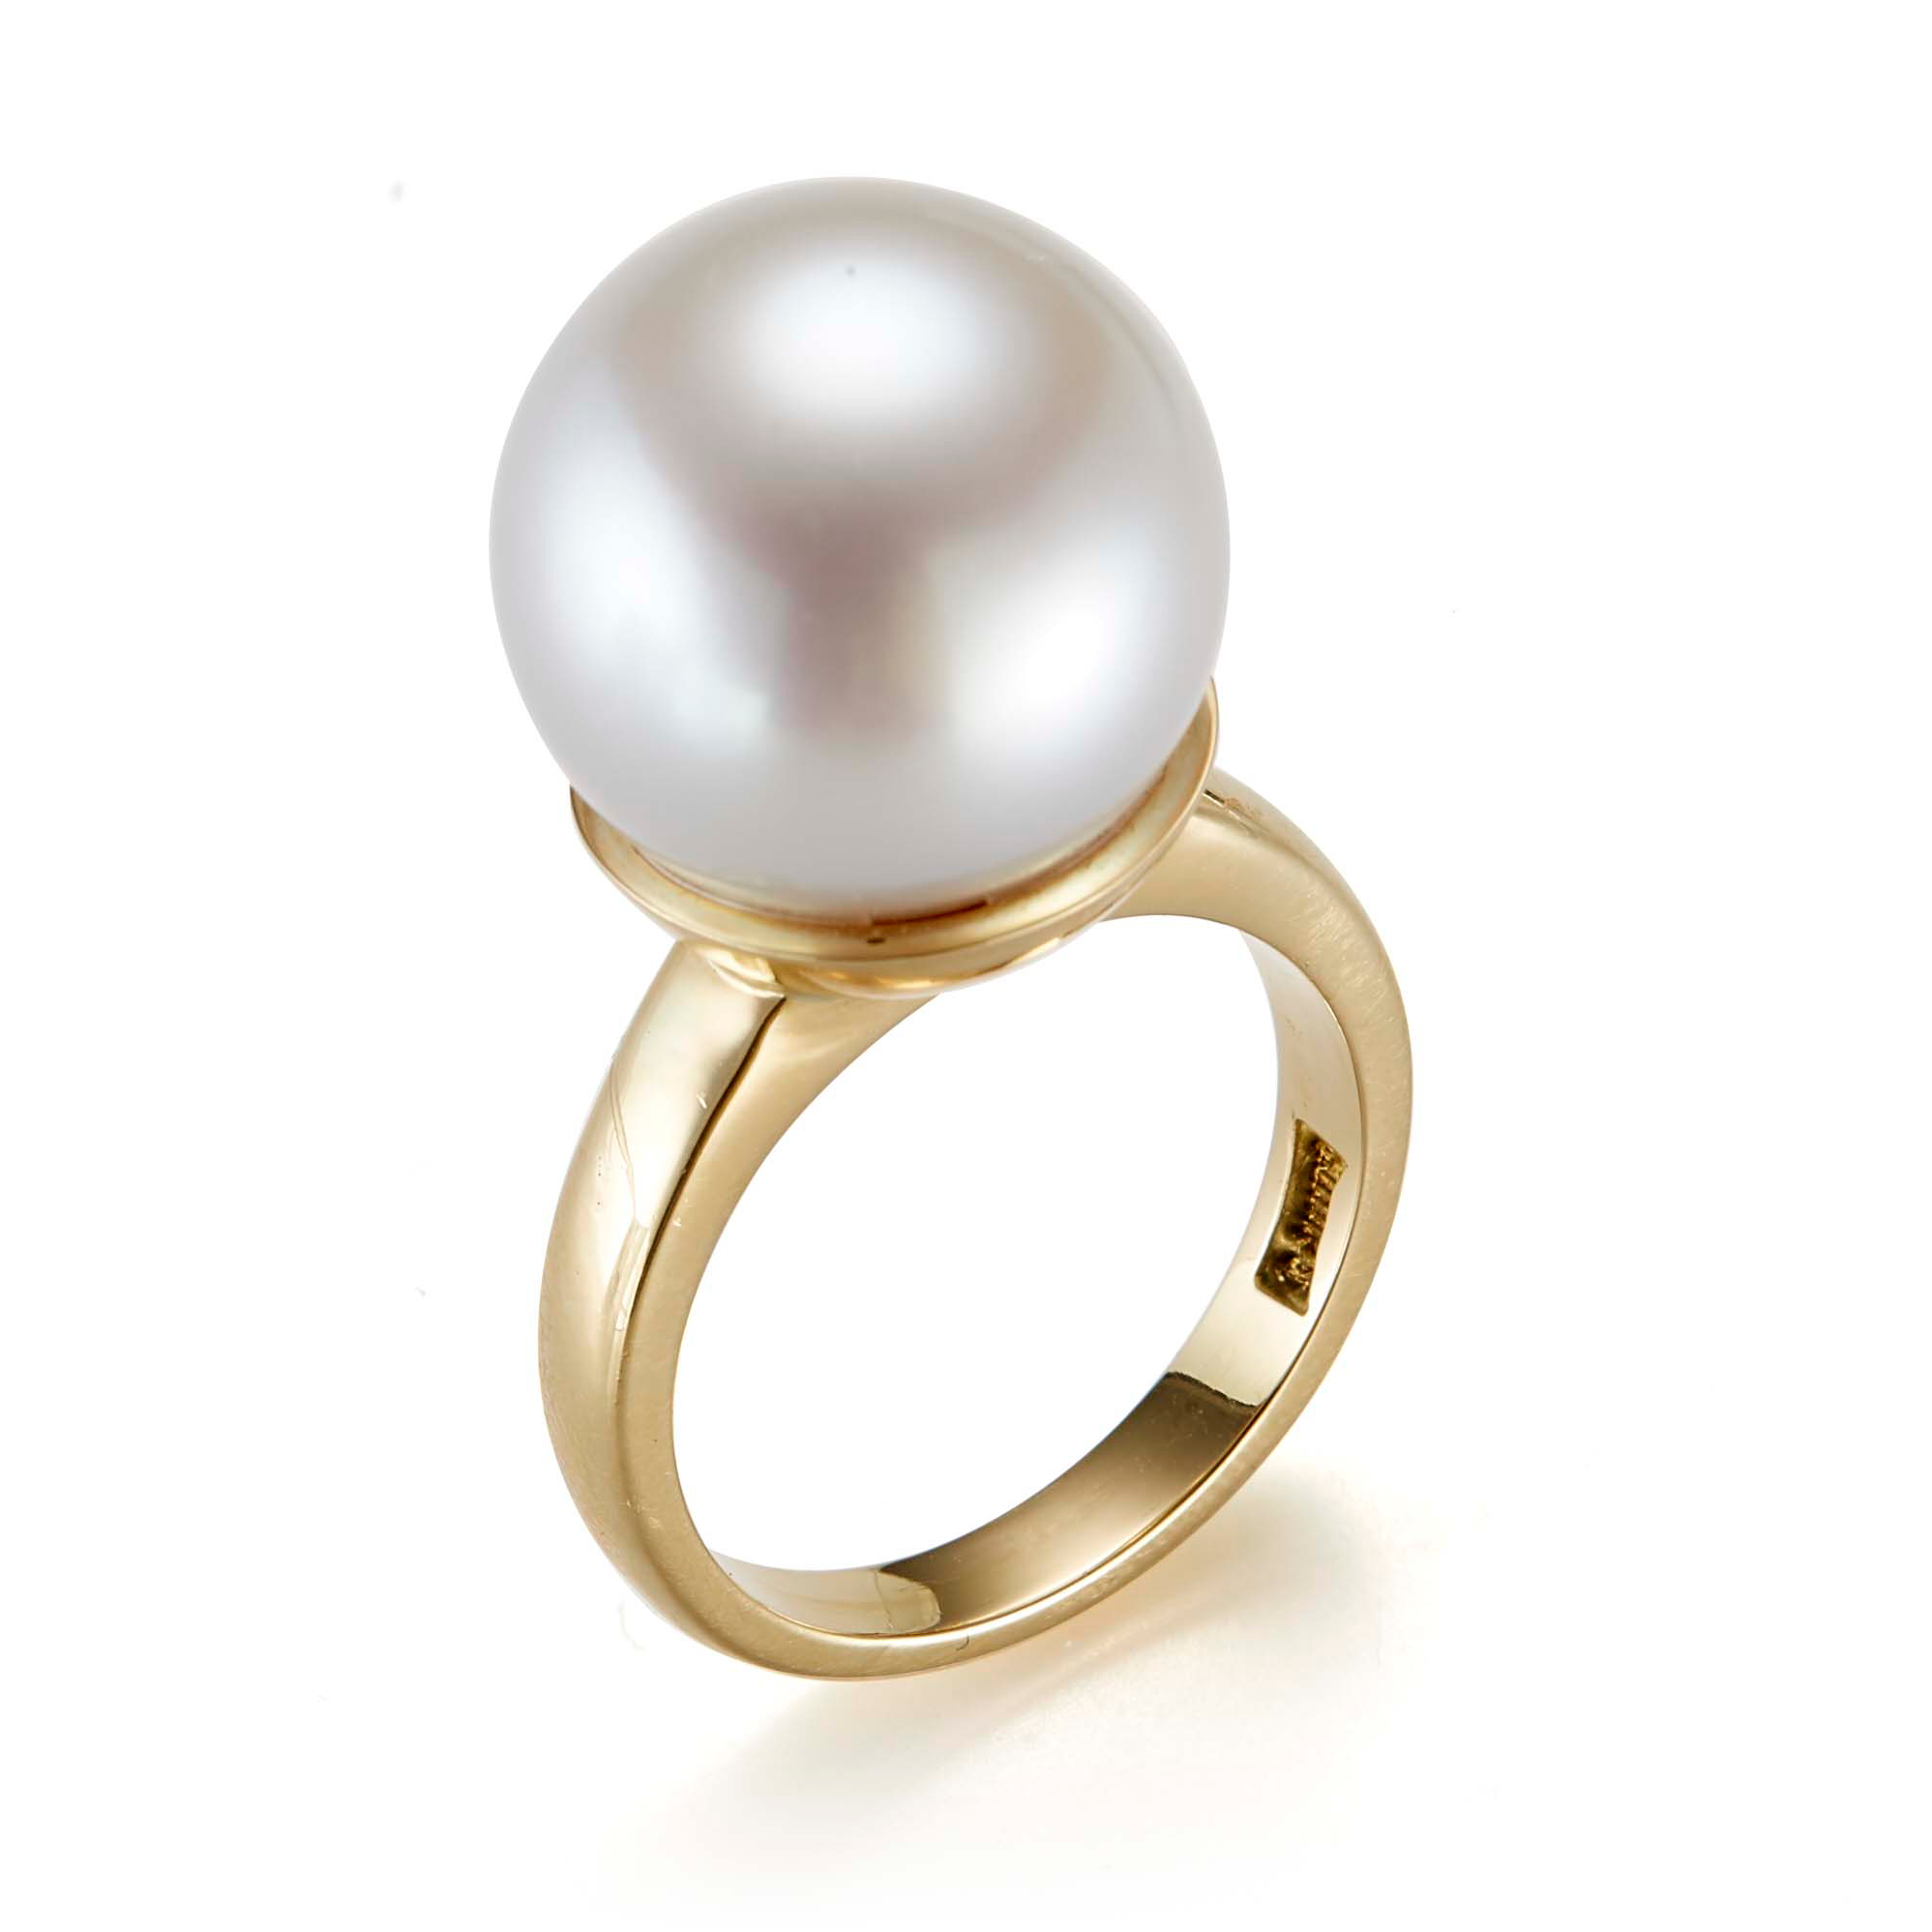 Gump's White South Sea Pearl Ring